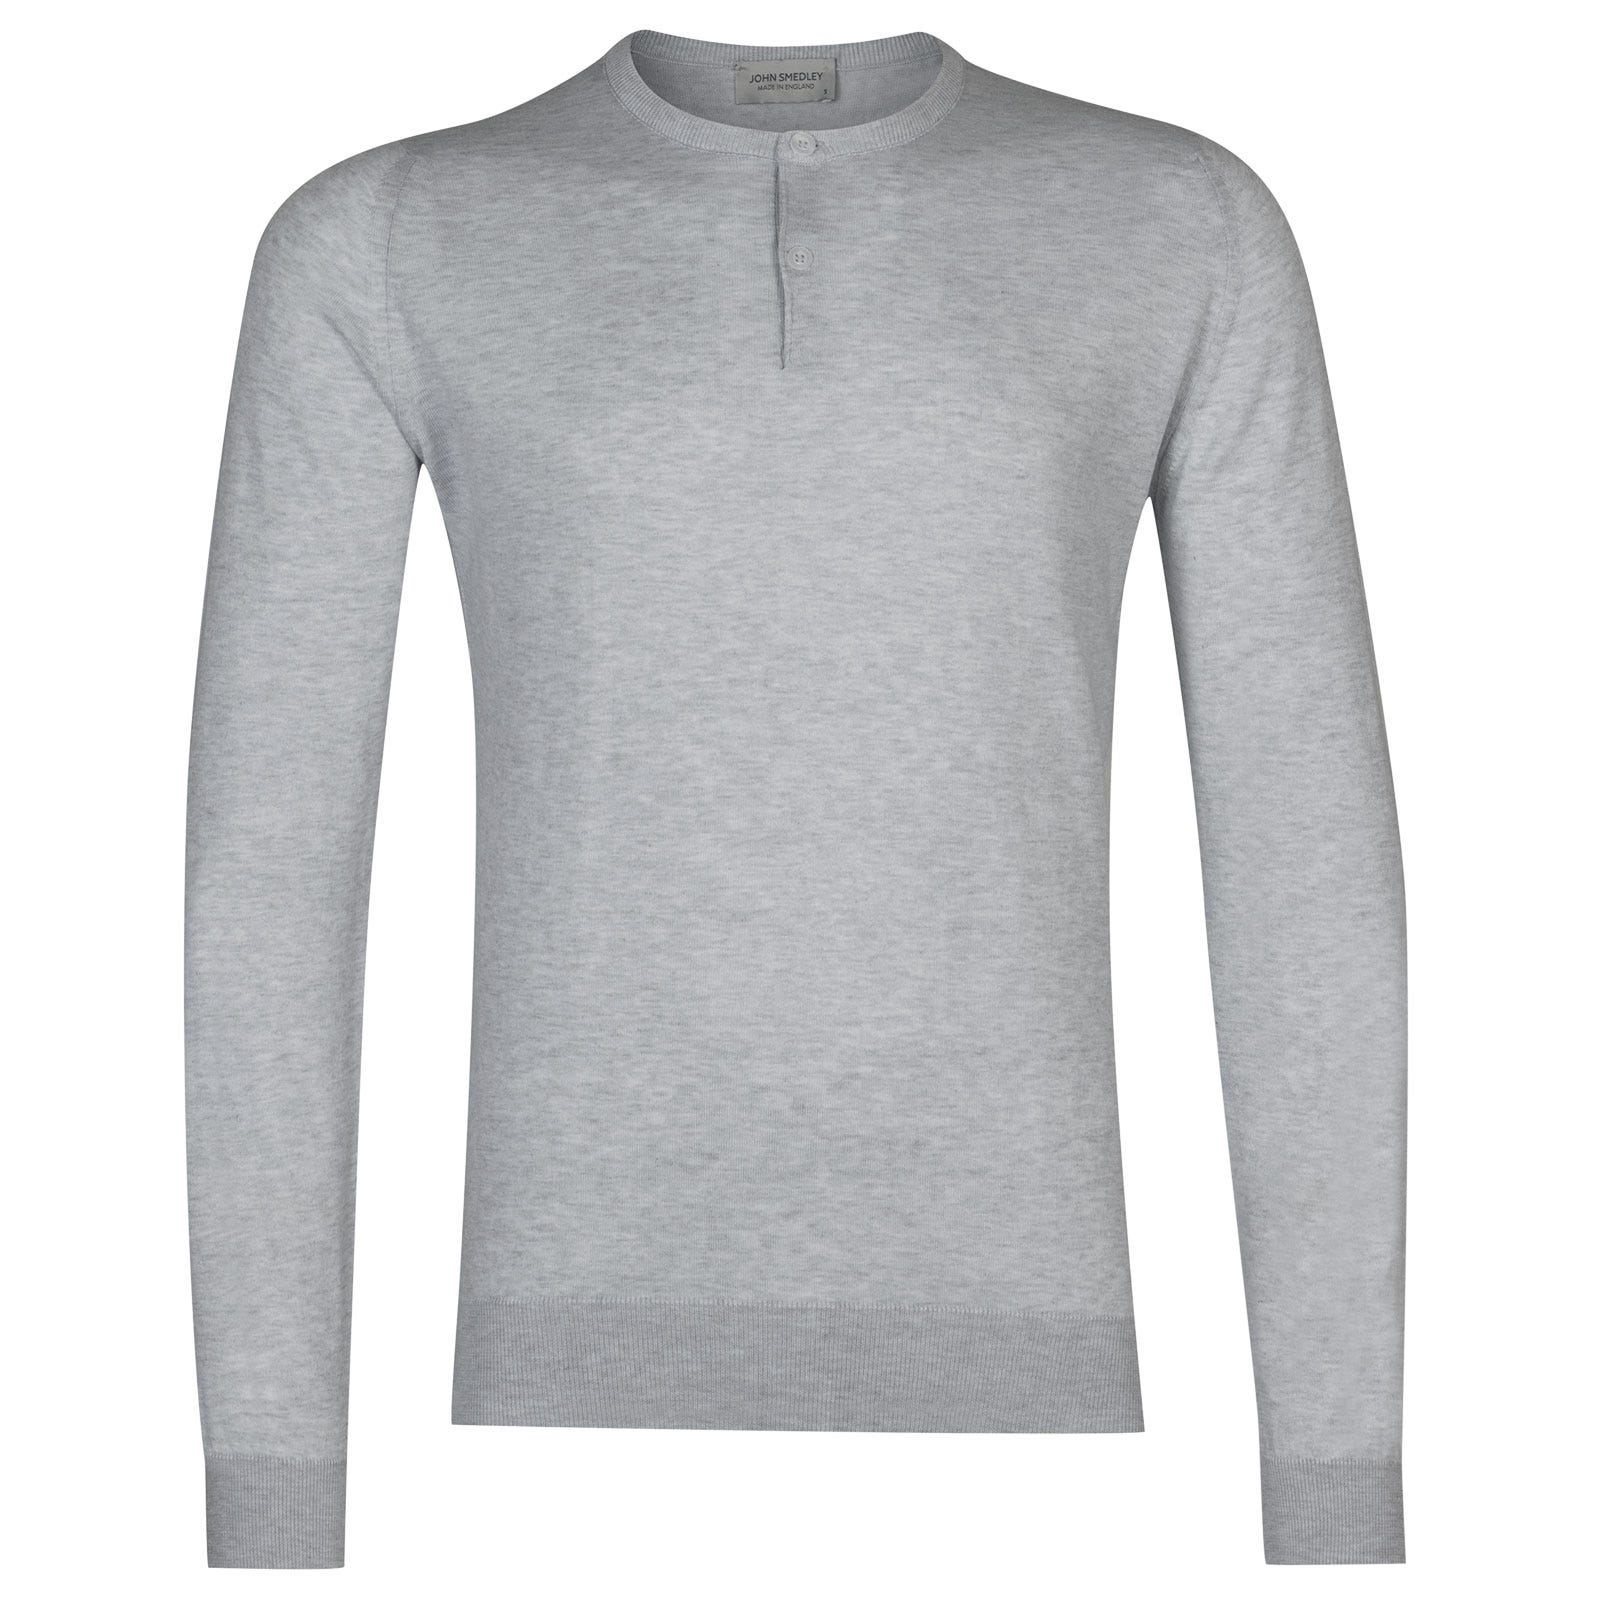 John Smedley Wembury Sea Island Cotton Pullover in Feather Grey-L